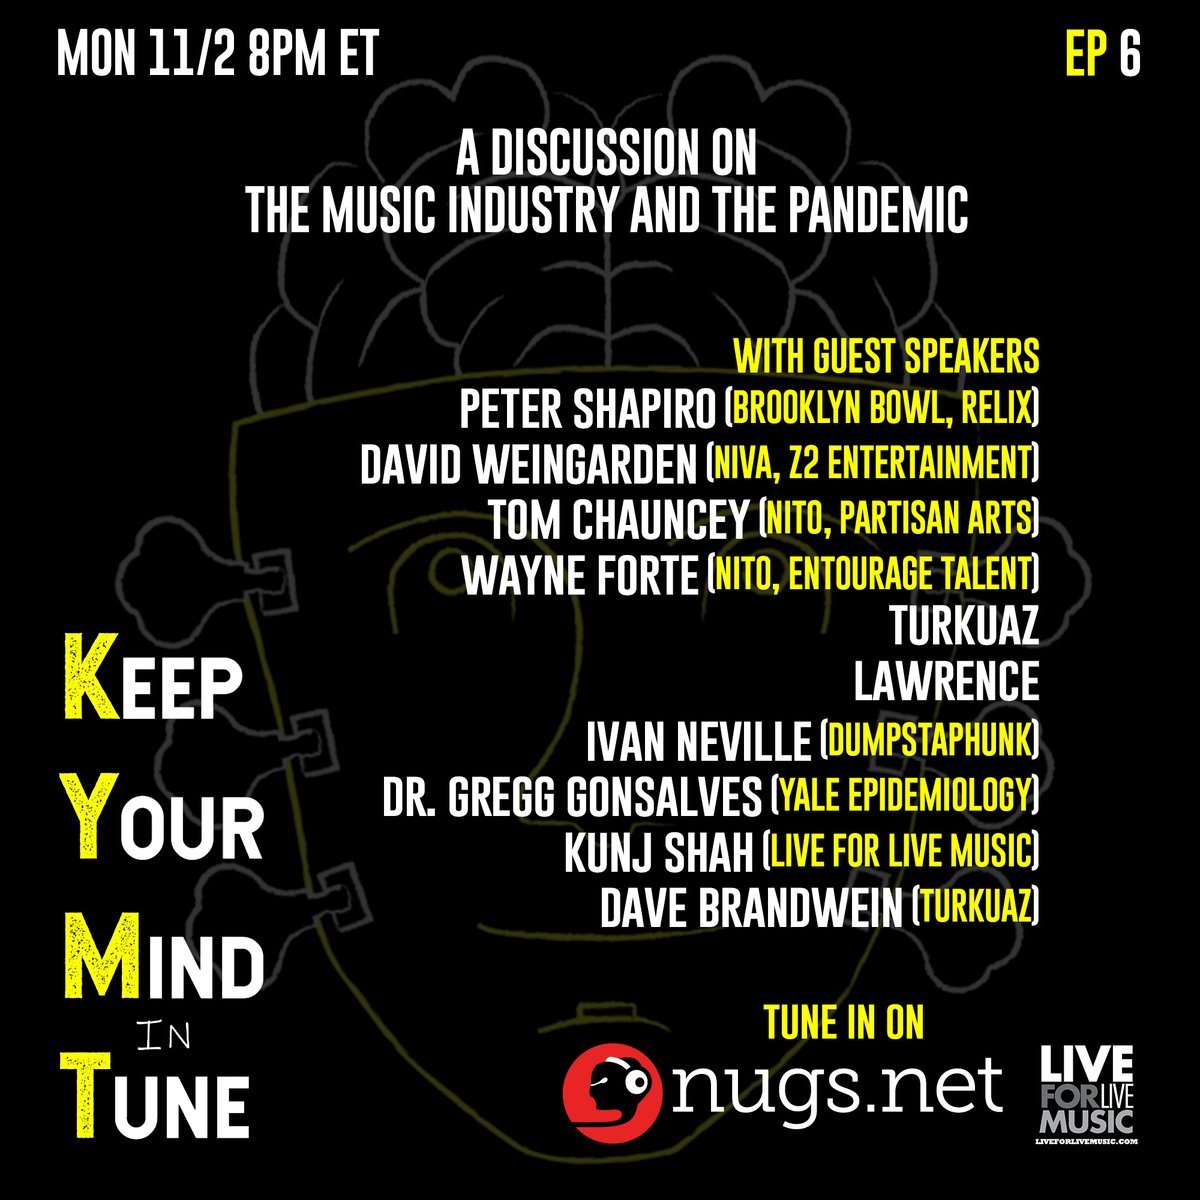 Tune in tonight at 8PM ET for a discussion w/ Peter Shapiro + representatives from @nivassoc + @NITO_Live on the pandemic and the state of the music industry on @keepurmindntune, the new web series from the founders of @L4LM + @Turkuaz-->> linktr.ee/KYMIT